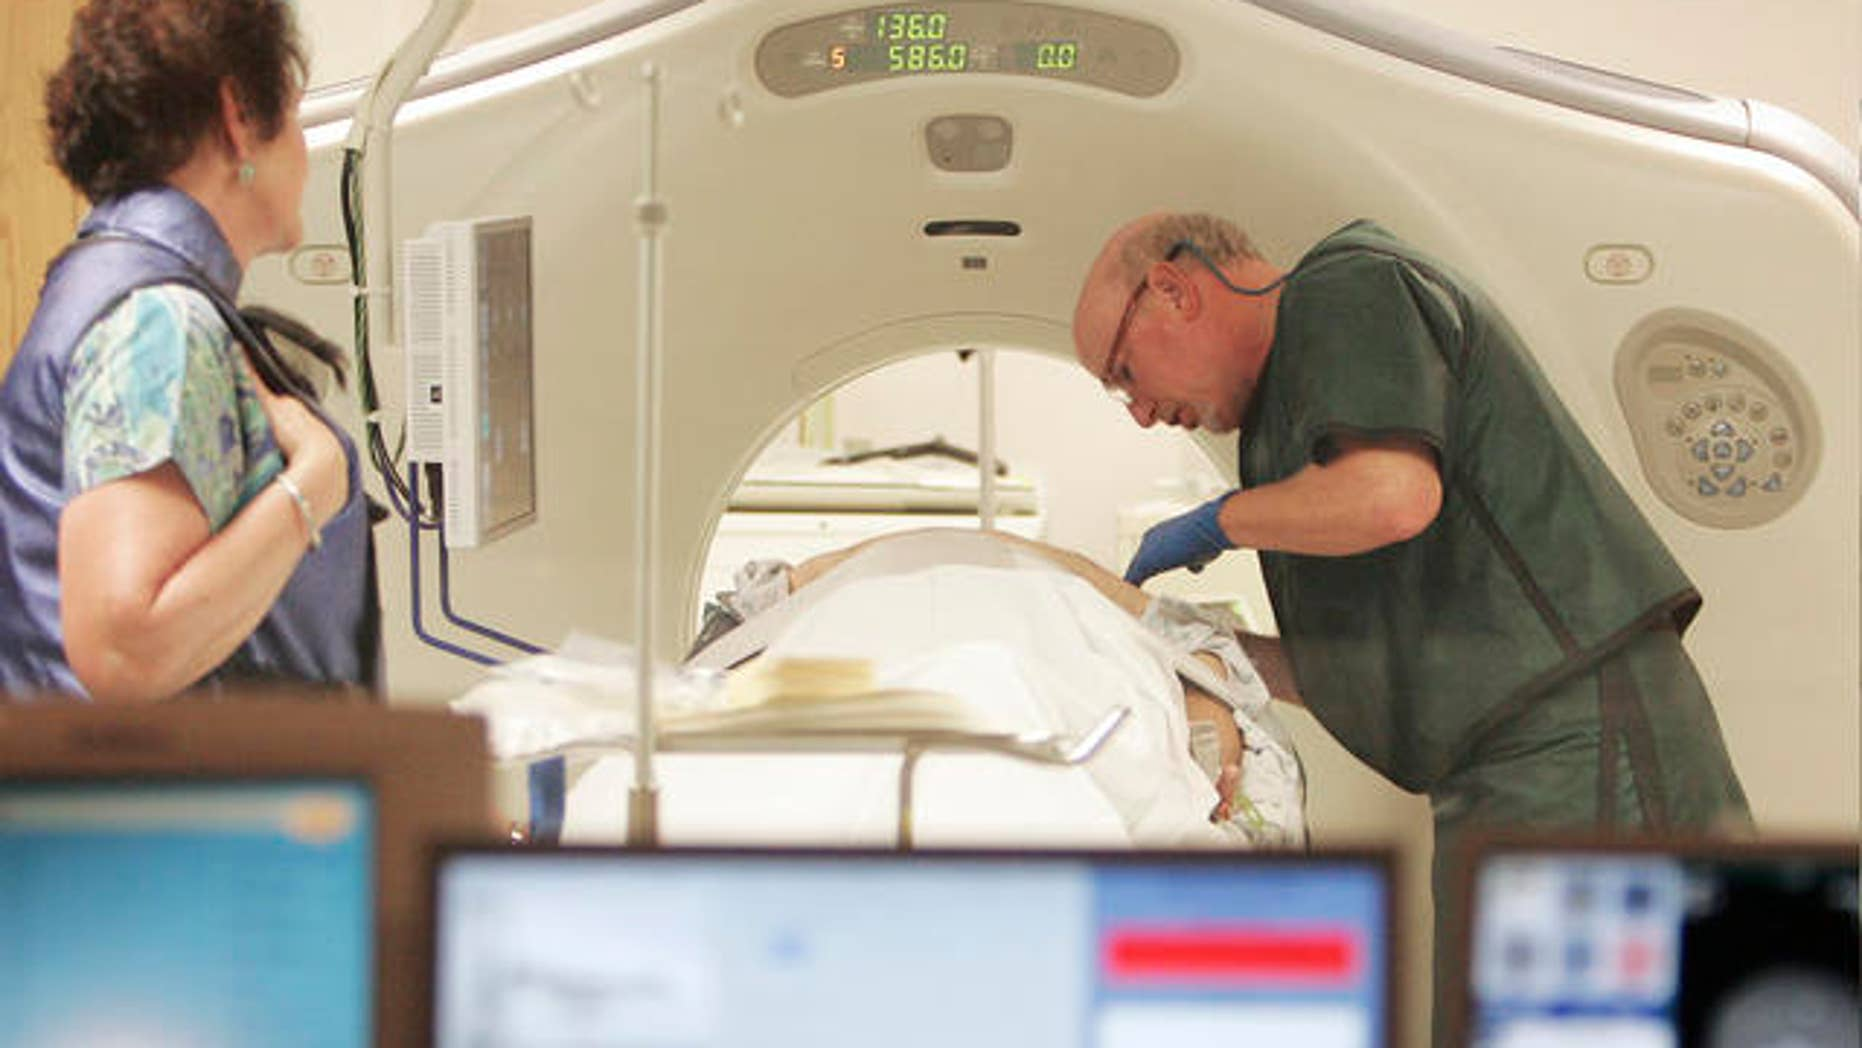 In this photo taken Thursday, June 3, 2010, Dr. Steven Birnbaum works a CT scanner with a patient at Southern New Hampshire Medical Center in Nashua, N.H. (AP Photo/Jim Cole)